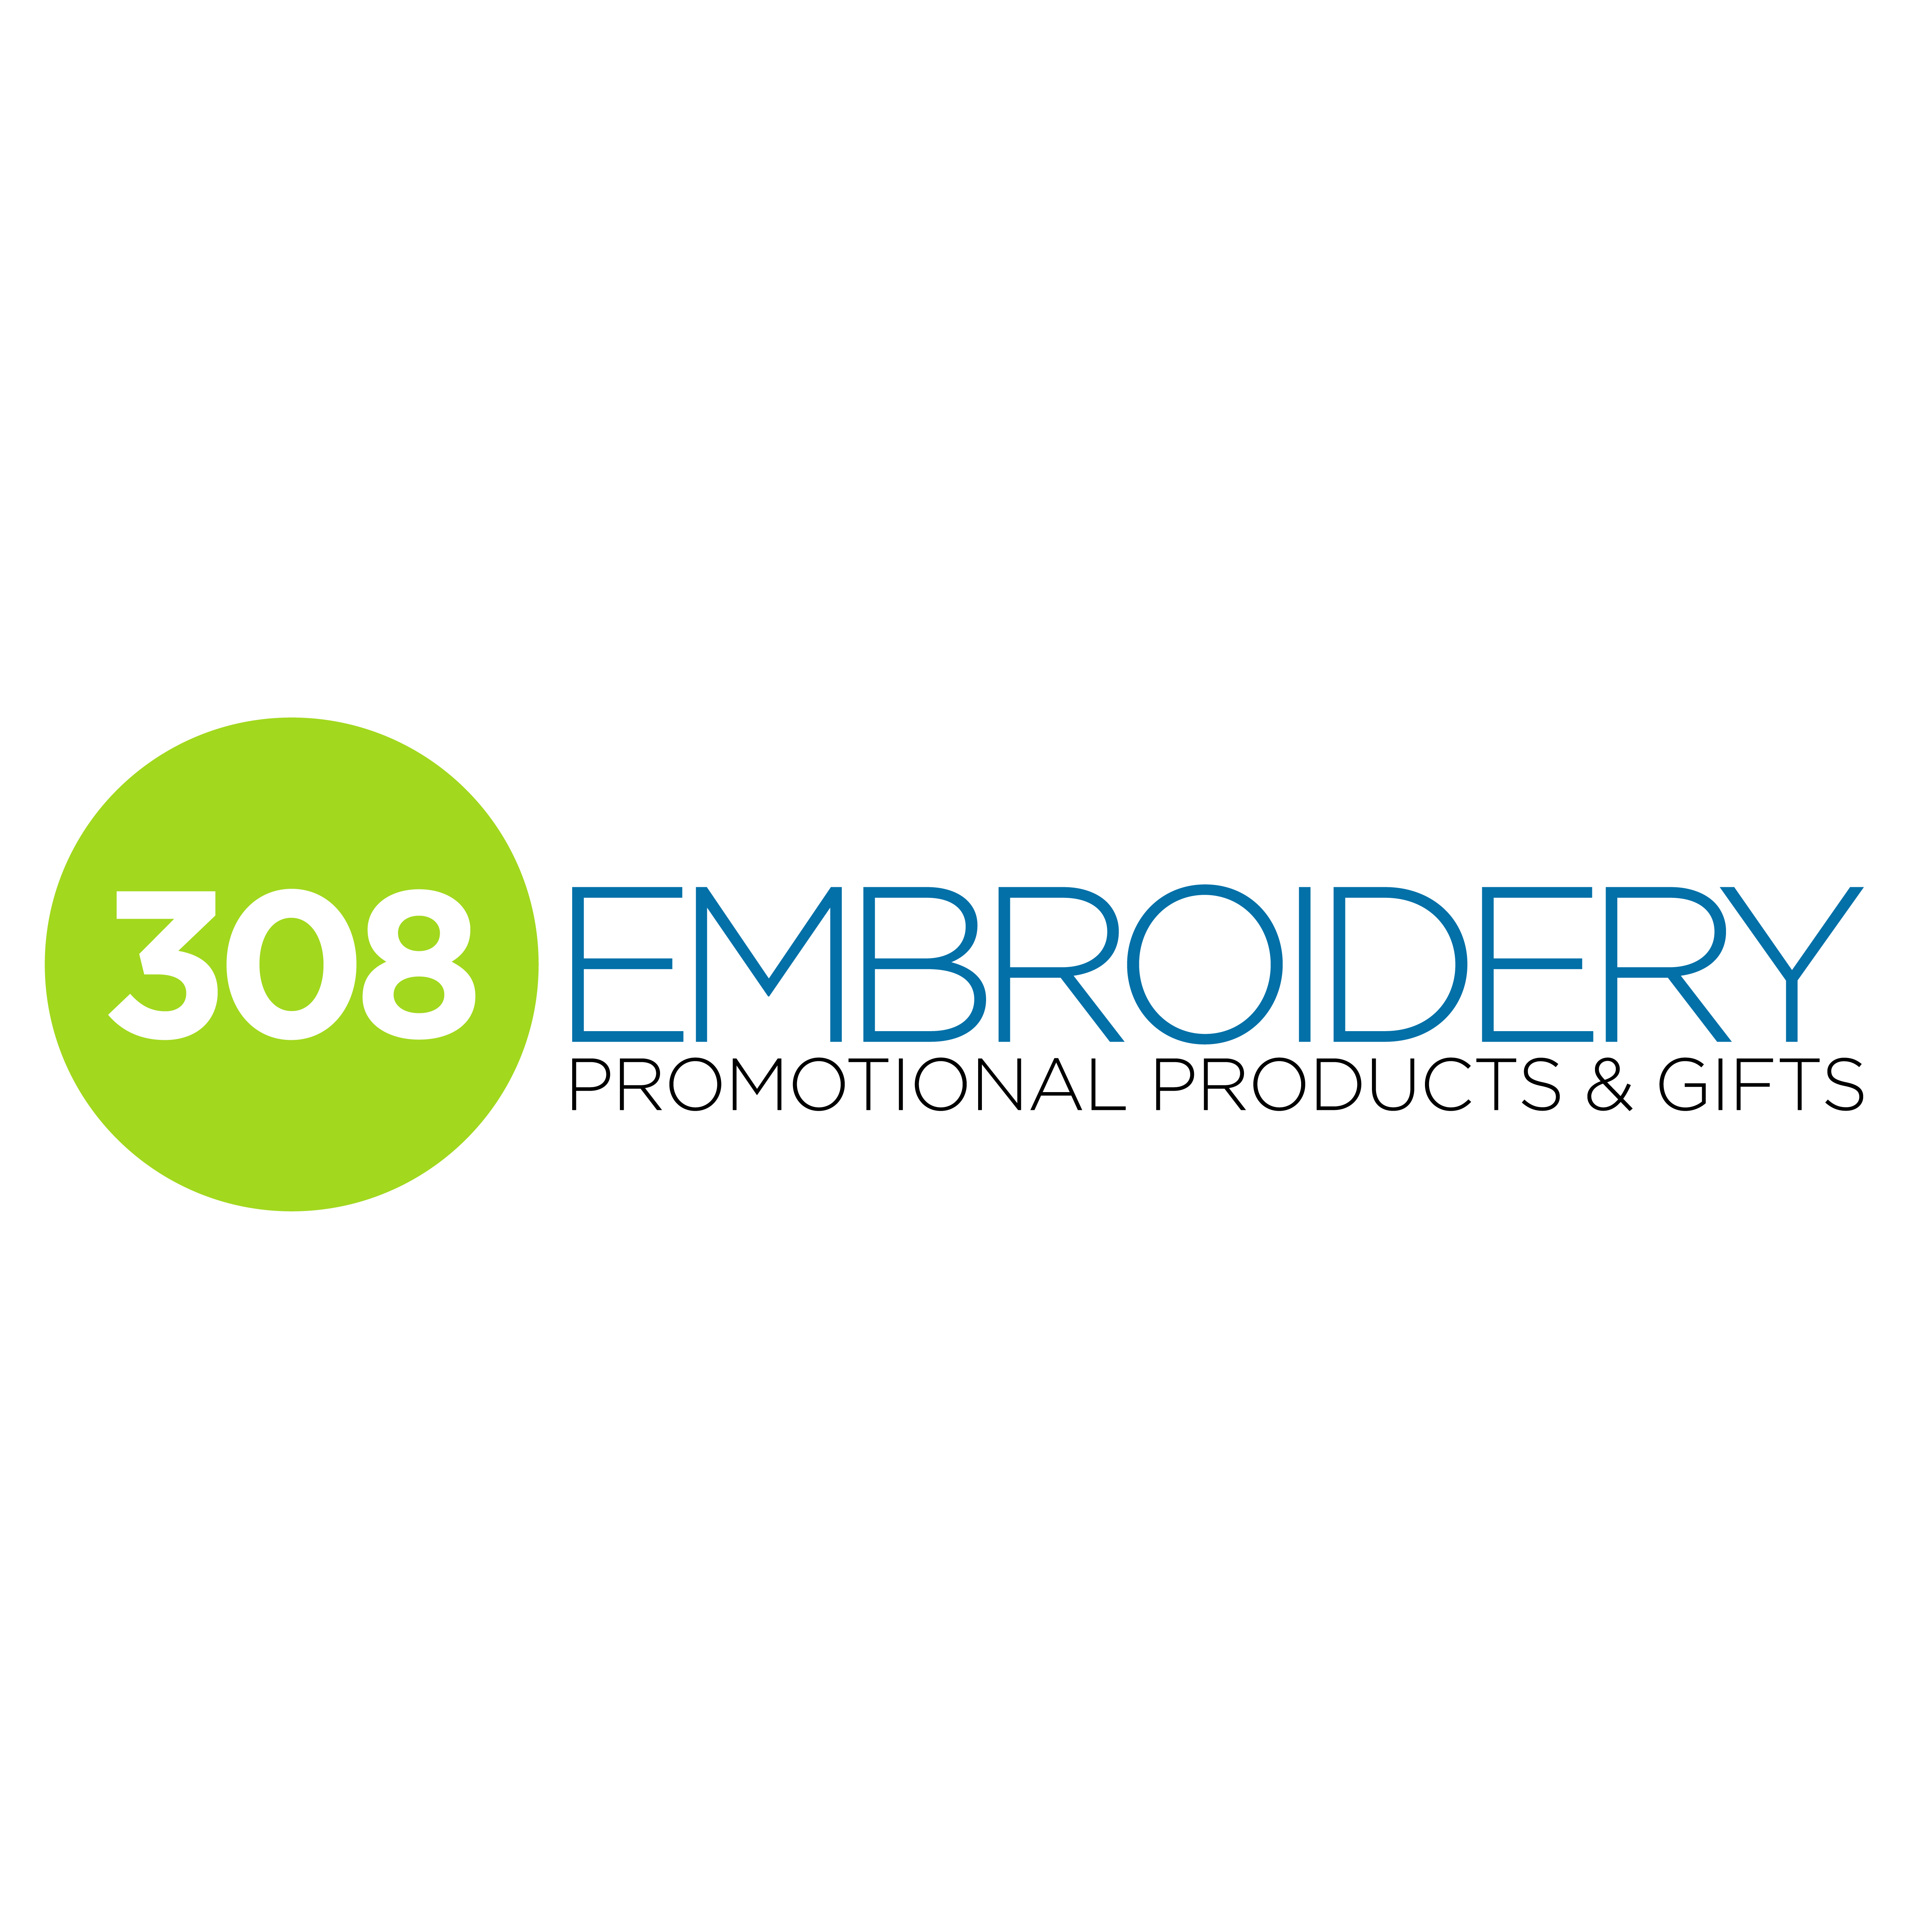 308 Embroidery